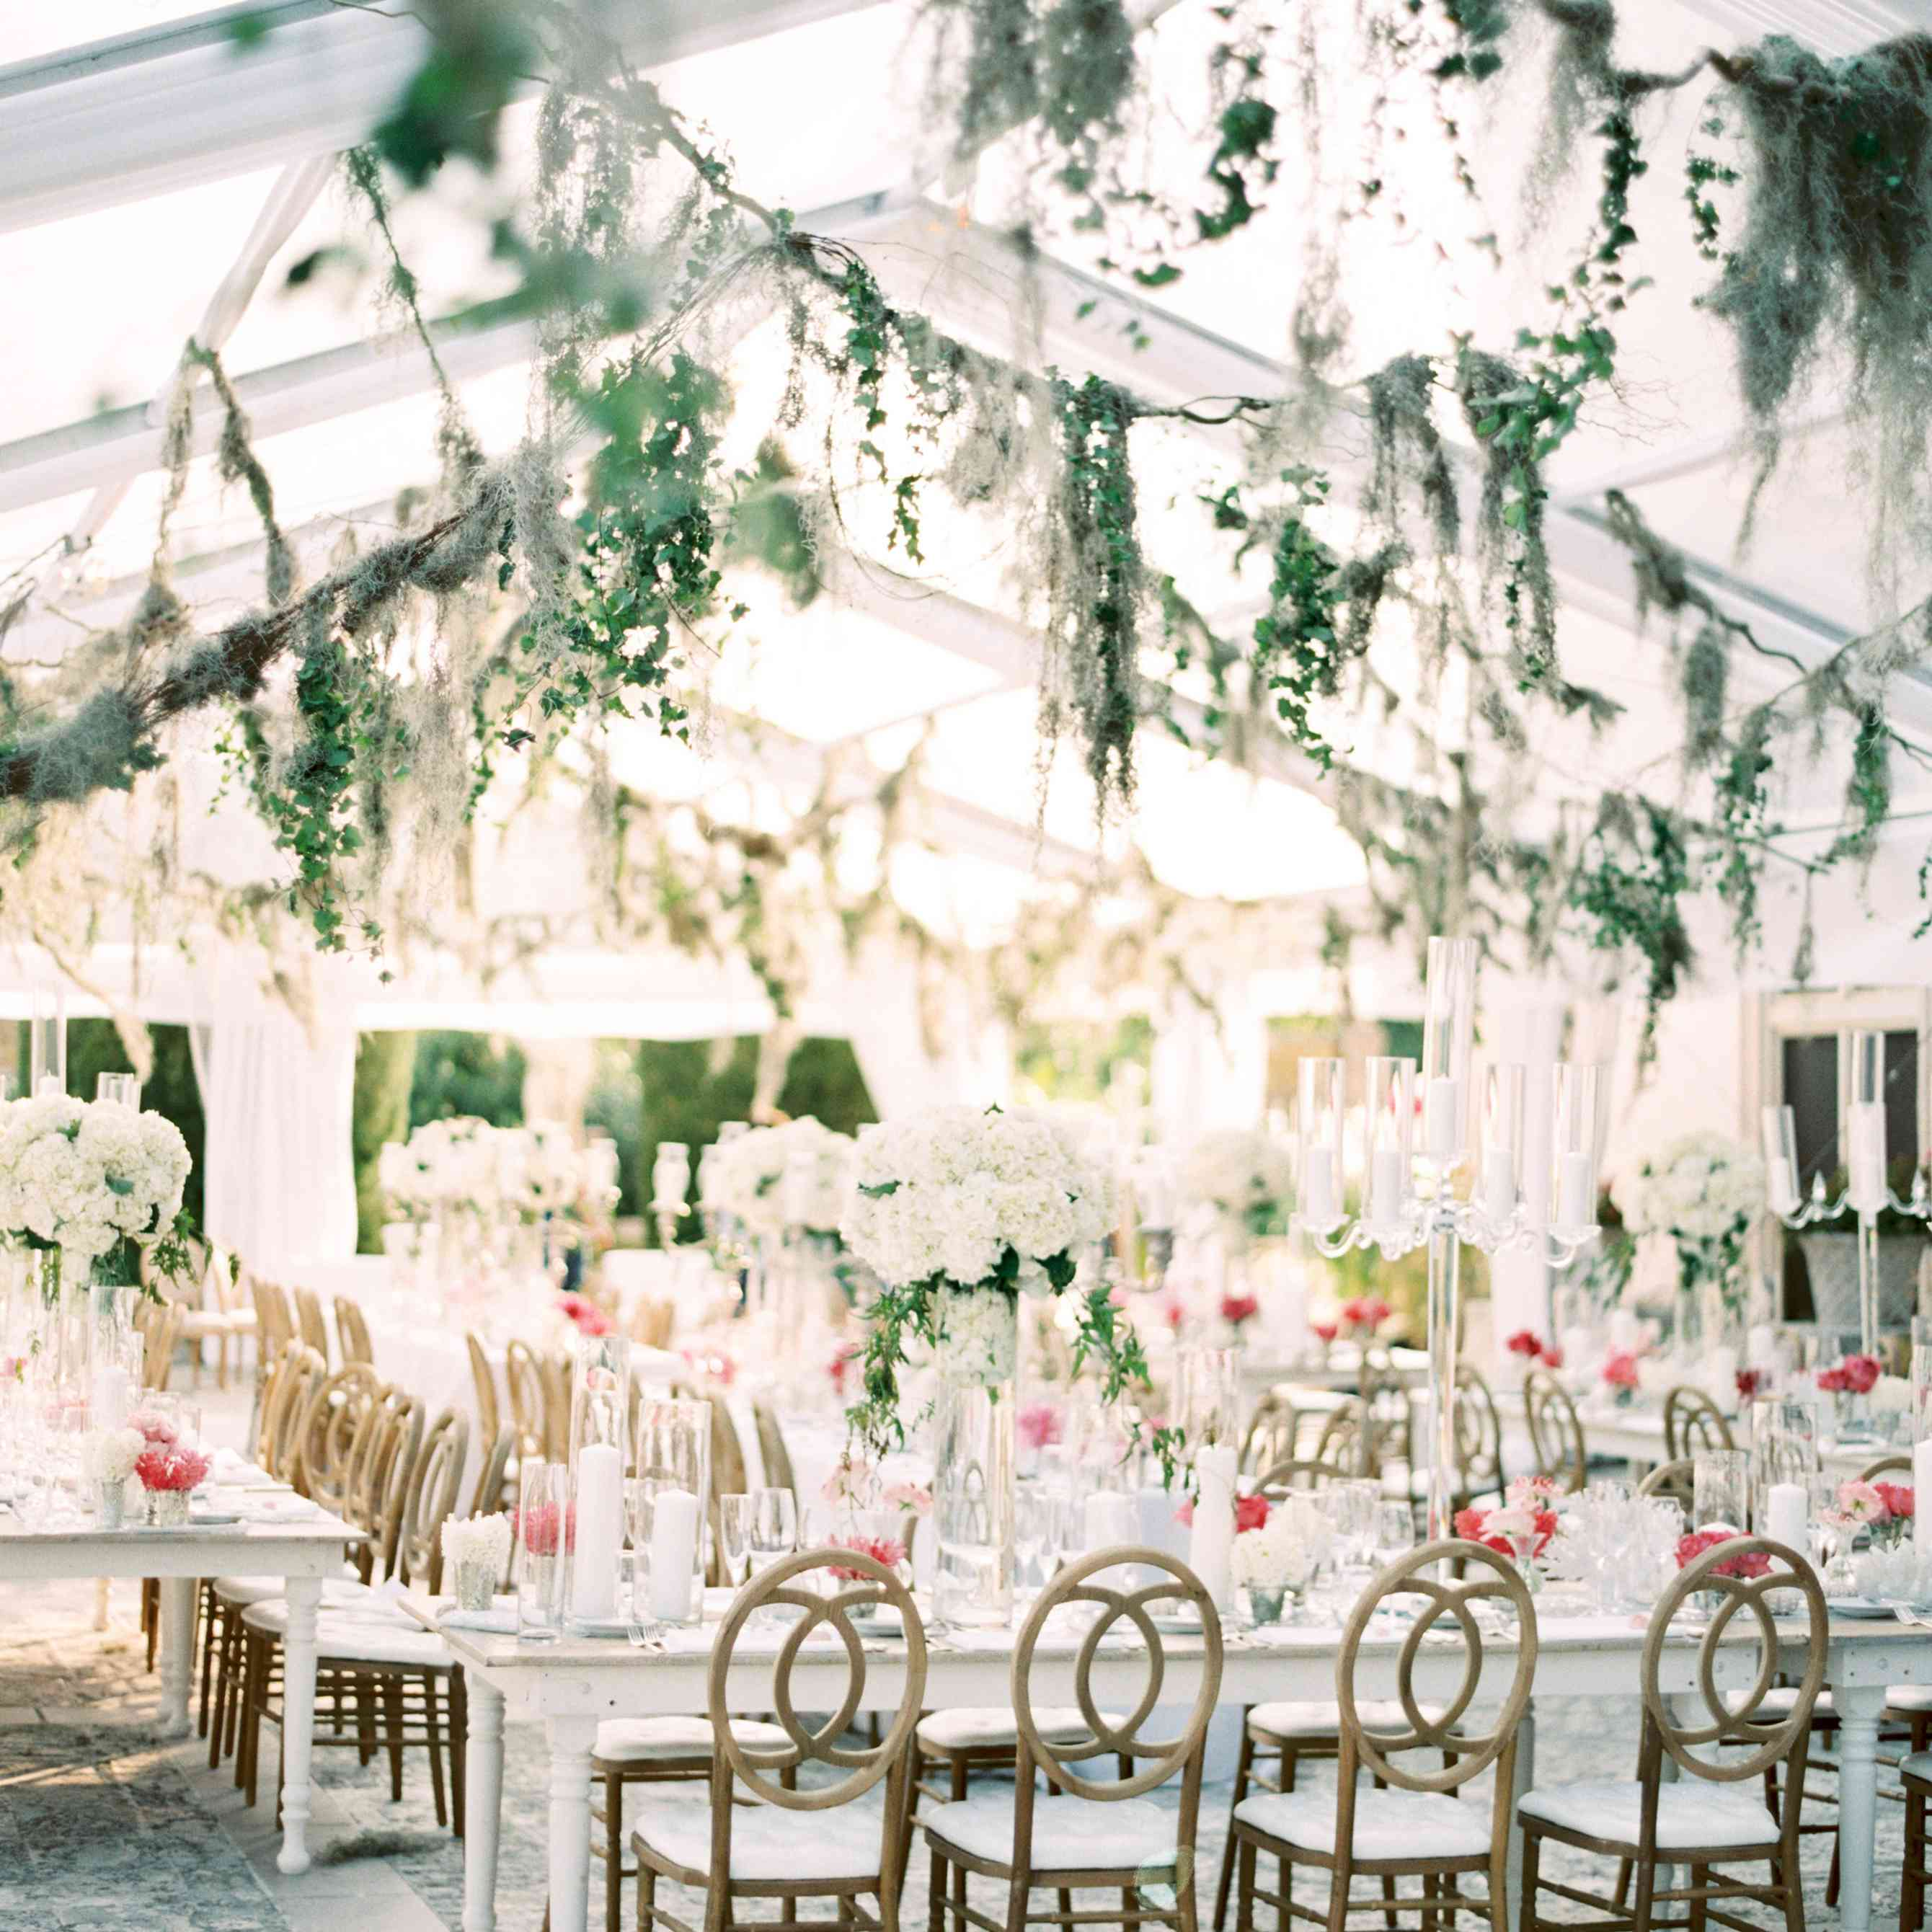 17 Beautiful Wedding Tent Ideas